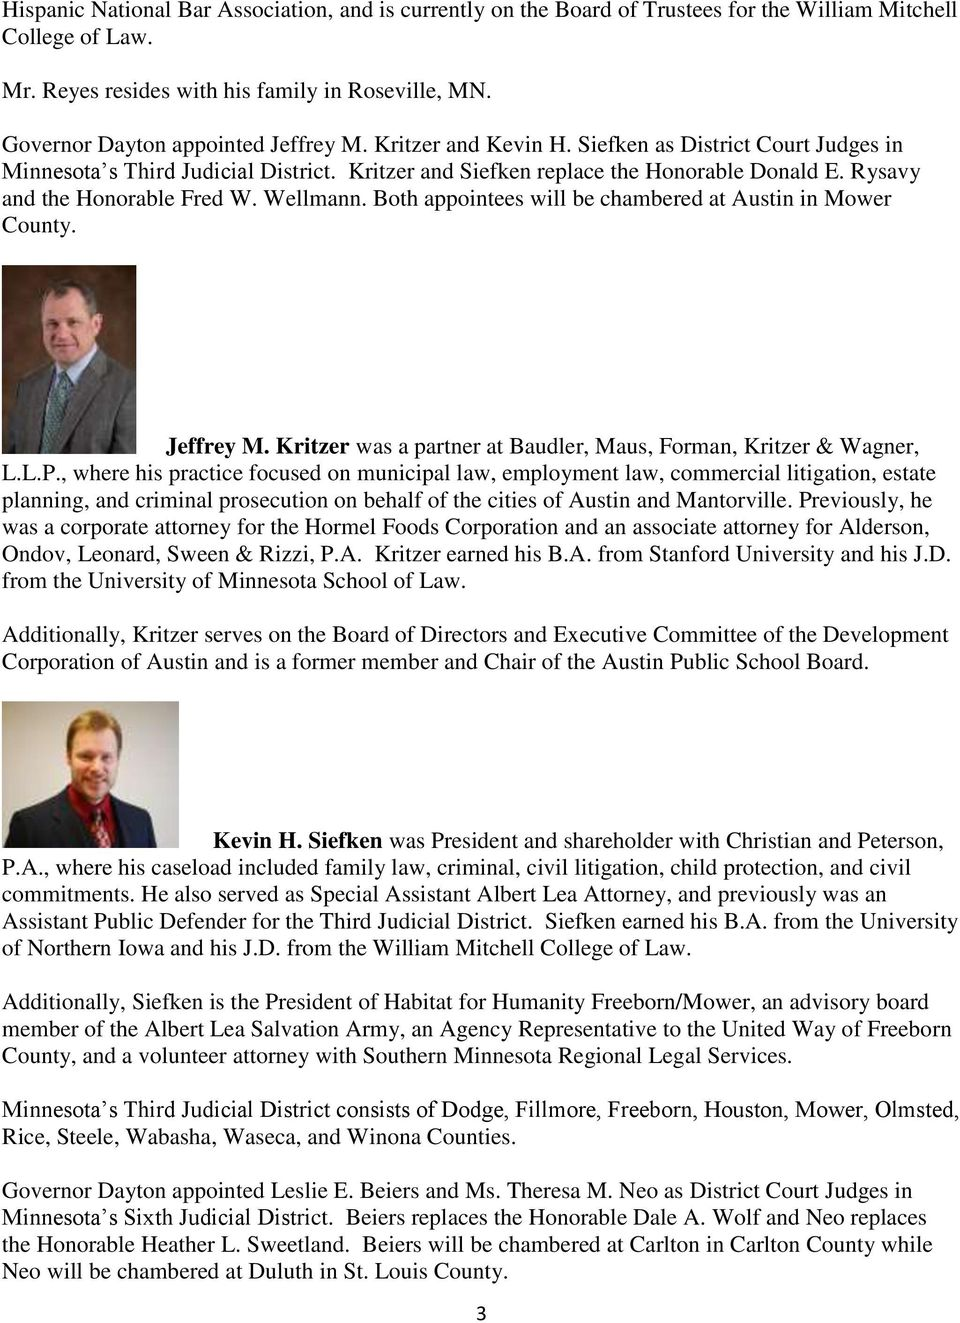 Rysavy and the Honorable Fred W. Wellmann. Both appointees will be chambered at Austin in Mower County. Jeffrey M. Kritzer was a partner at Baudler, Maus, Forman, Kritzer & Wagner, L.L.P.